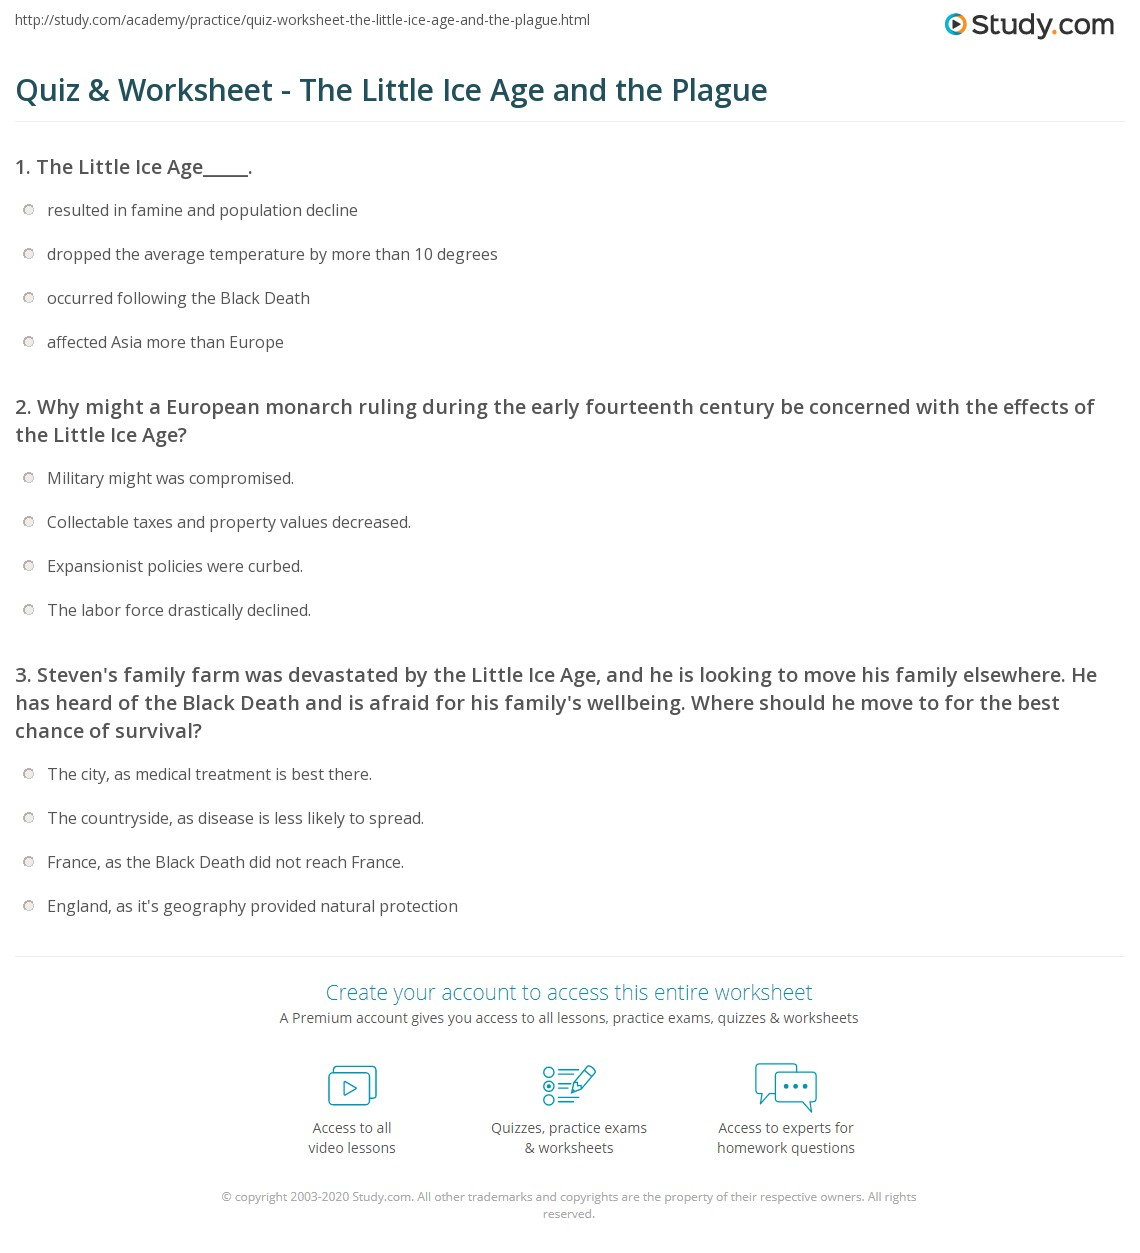 Quiz & Worksheet - The Little Ice Age and the Plague | Study.com